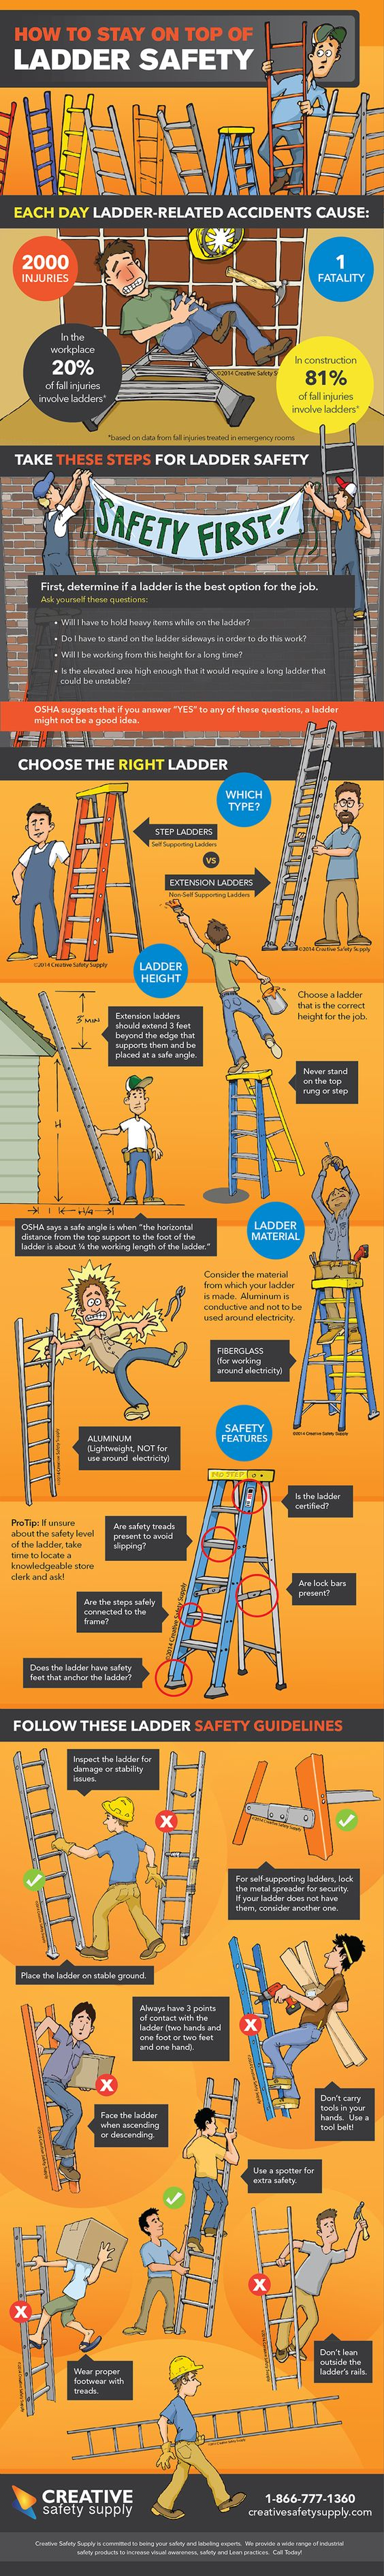 Ladder safety and infographic on pinterest for Ladder safety tips